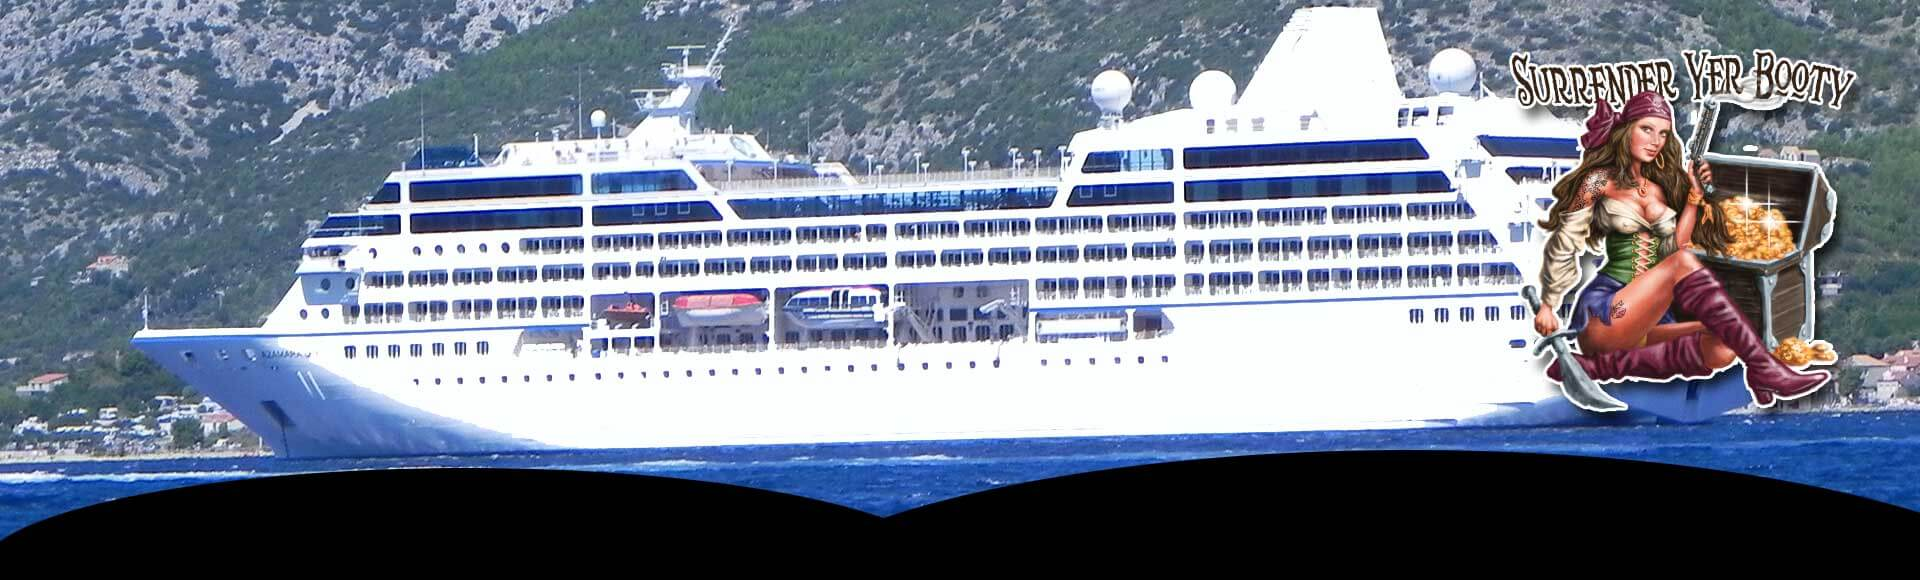 Azamara Quest Cruise Ship